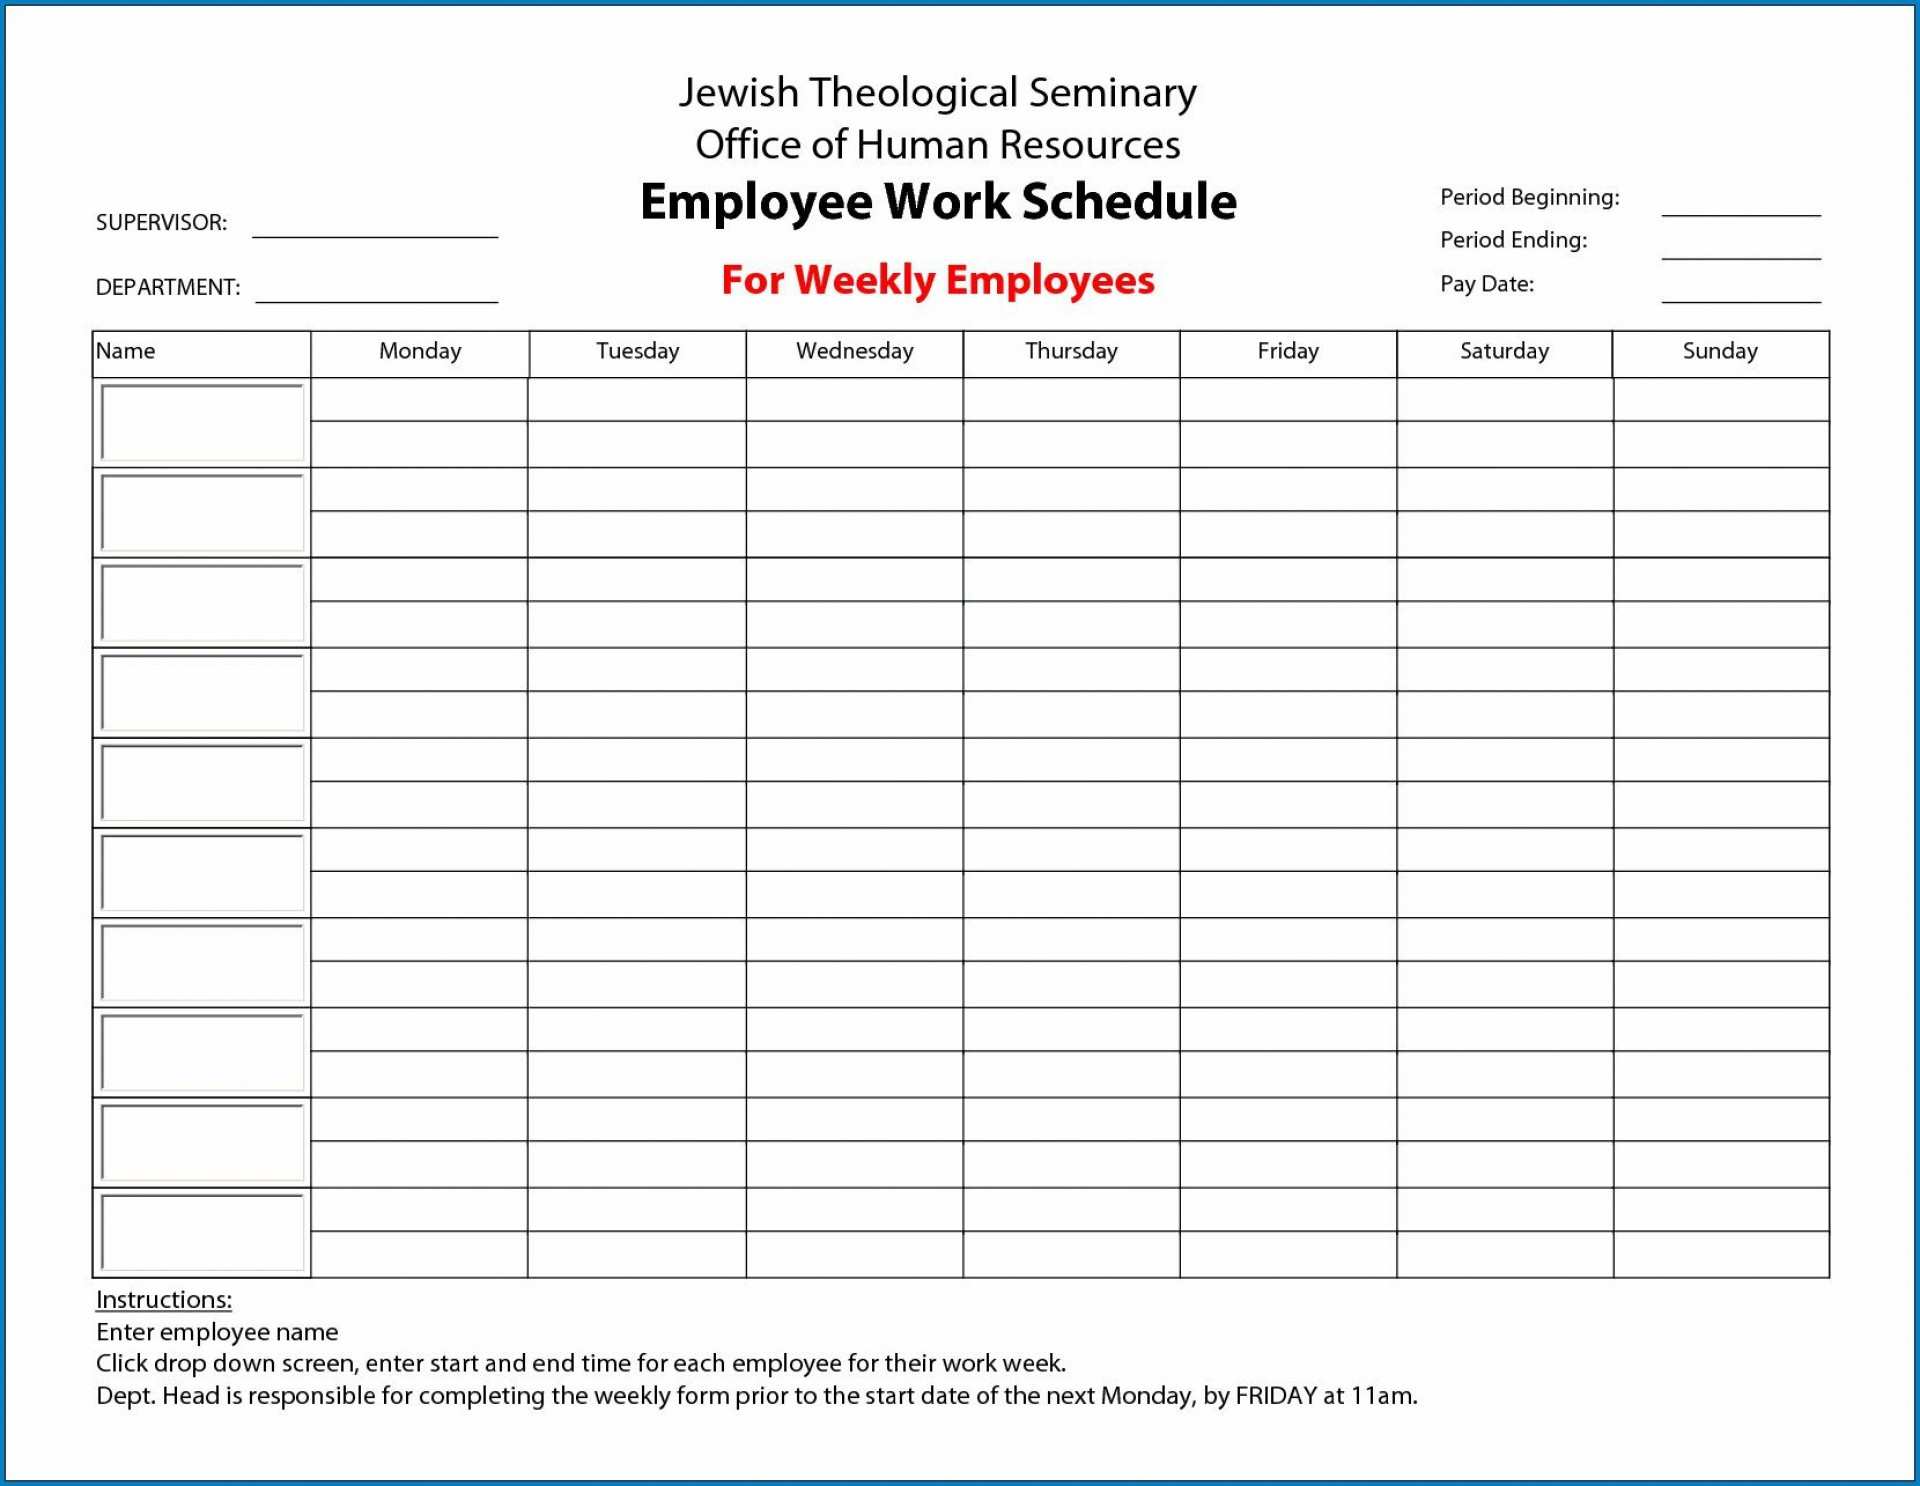 009 Dreaded Free Staff Scheduling Template High Def  Templates Excel Holiday Planner Printable Weekly Employee Work Schedule1920